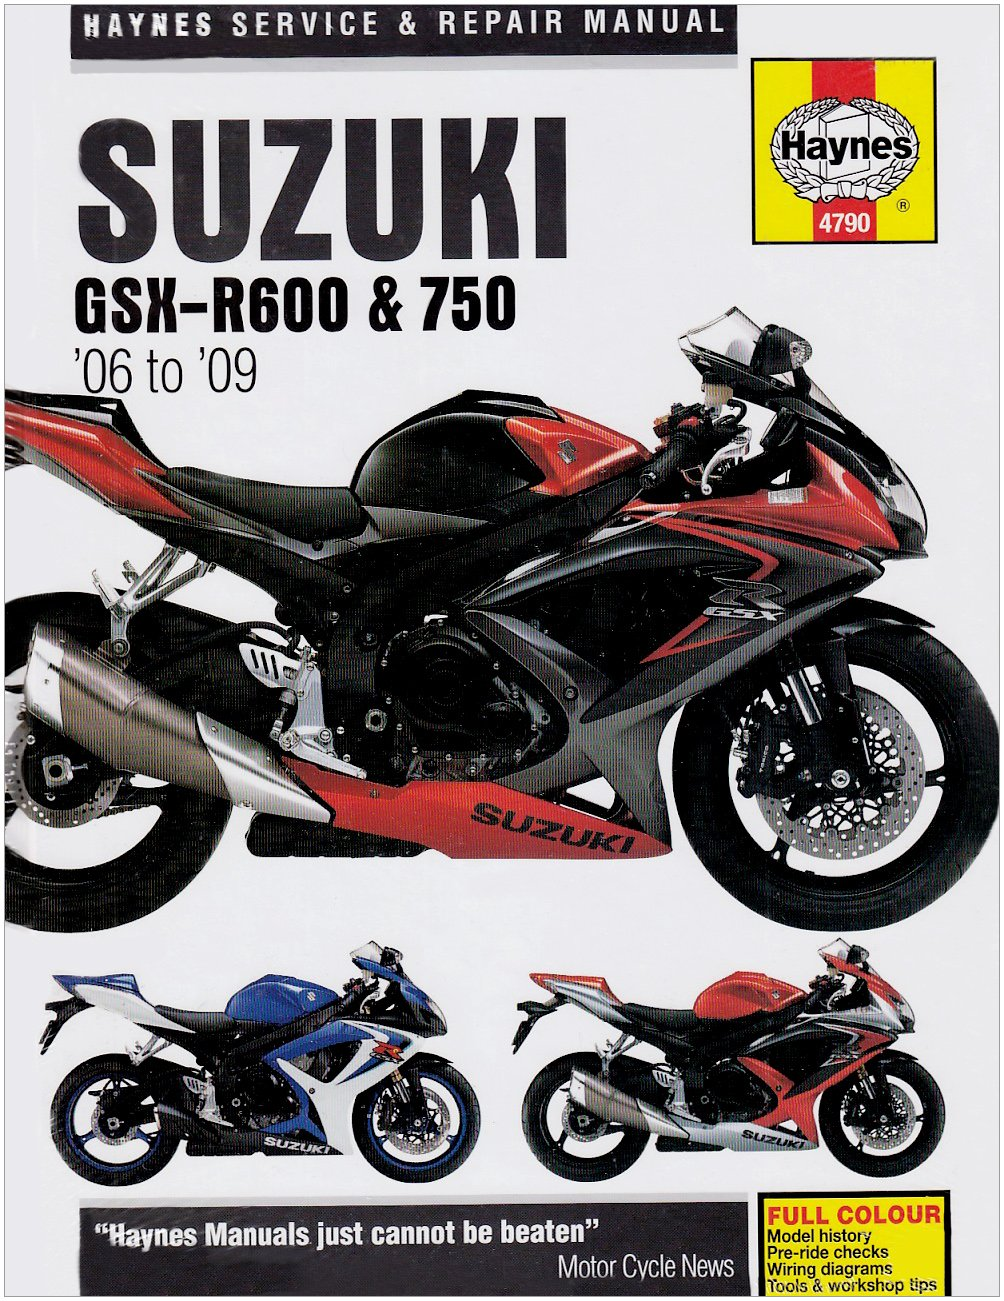 Title Suzuki GSX-R600 and 750 Service and Repair Manual: 2006 to 2009  (Haynes Service and Repair Manuals): Matthew Coombs: 9781844257904:  Amazon.com: Books